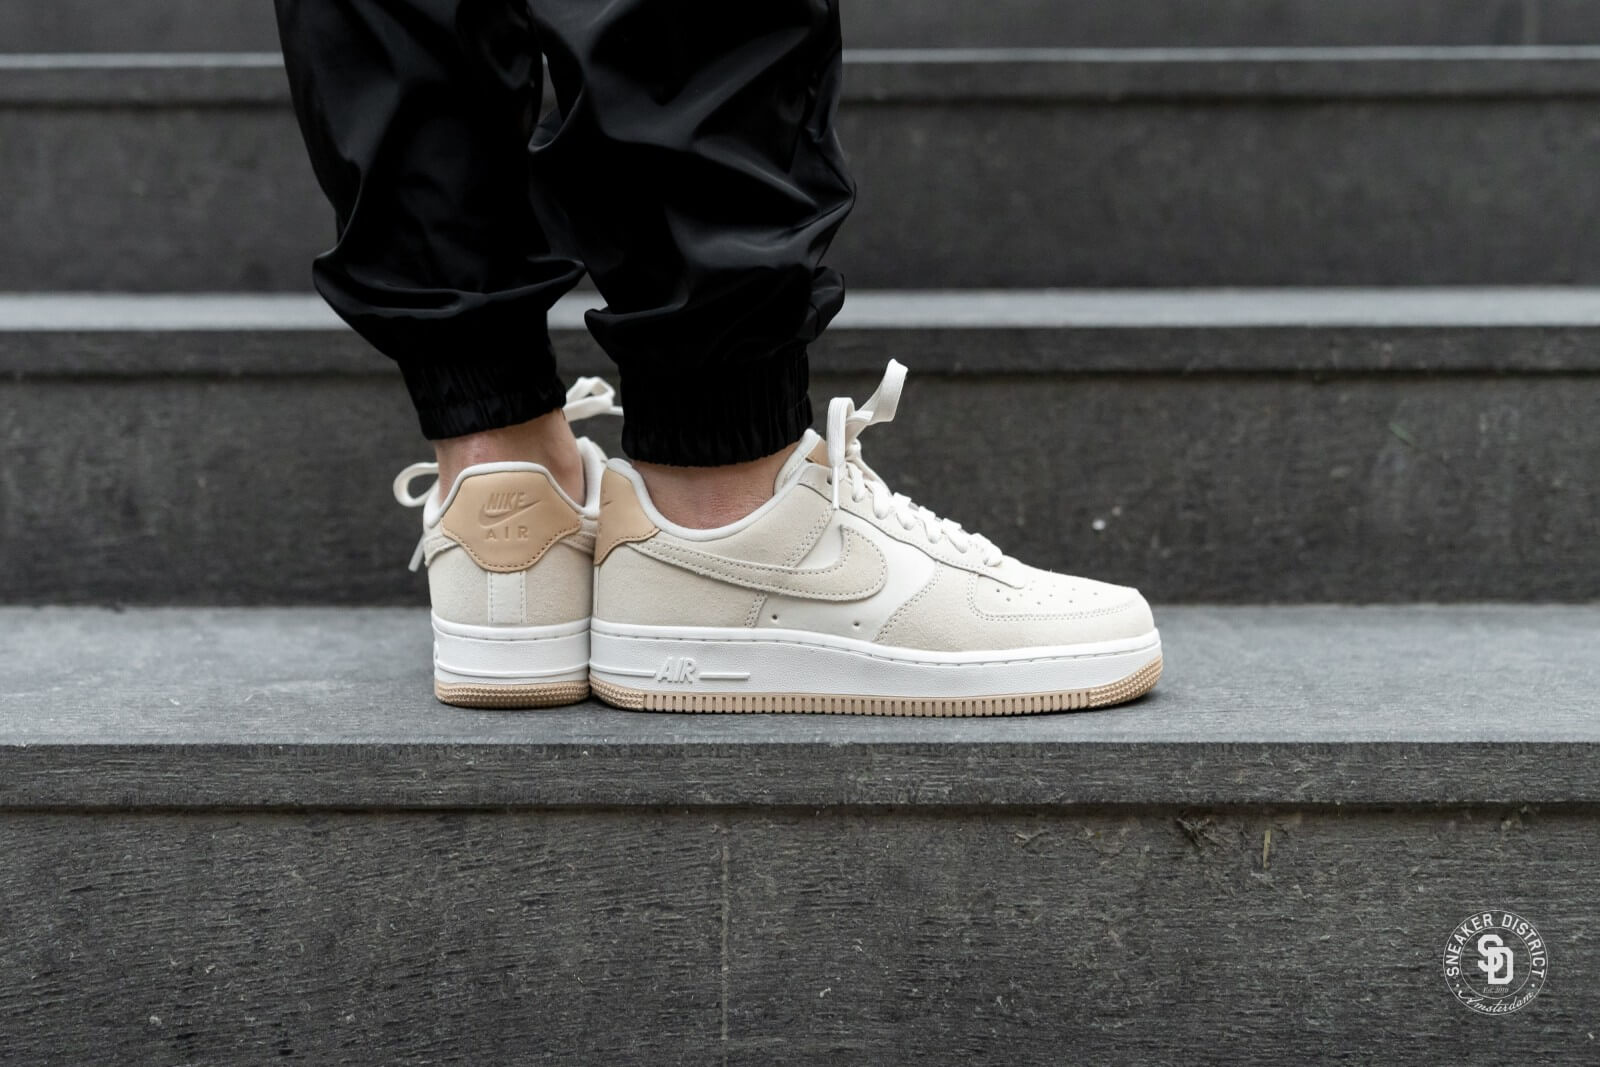 Medieval Aplicado Campo  Nike Women's Air Force 1 '07 Premium Pale Ivory/Summit White - 896185-102